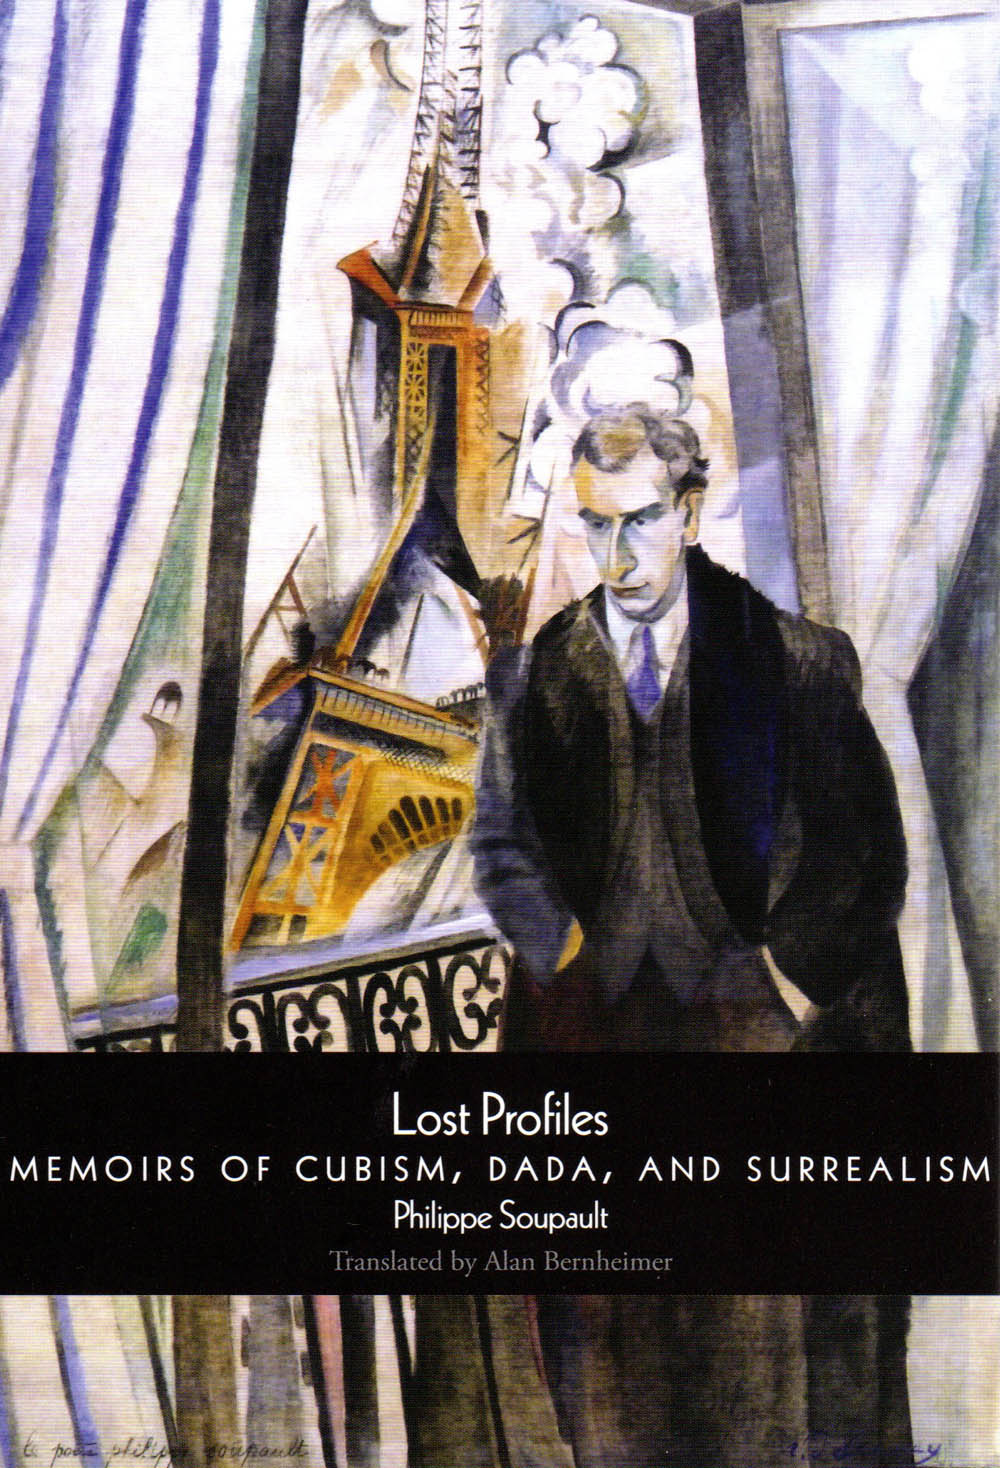 Lost Profiles: Memoirs of Cubism, Dada and Surrealism